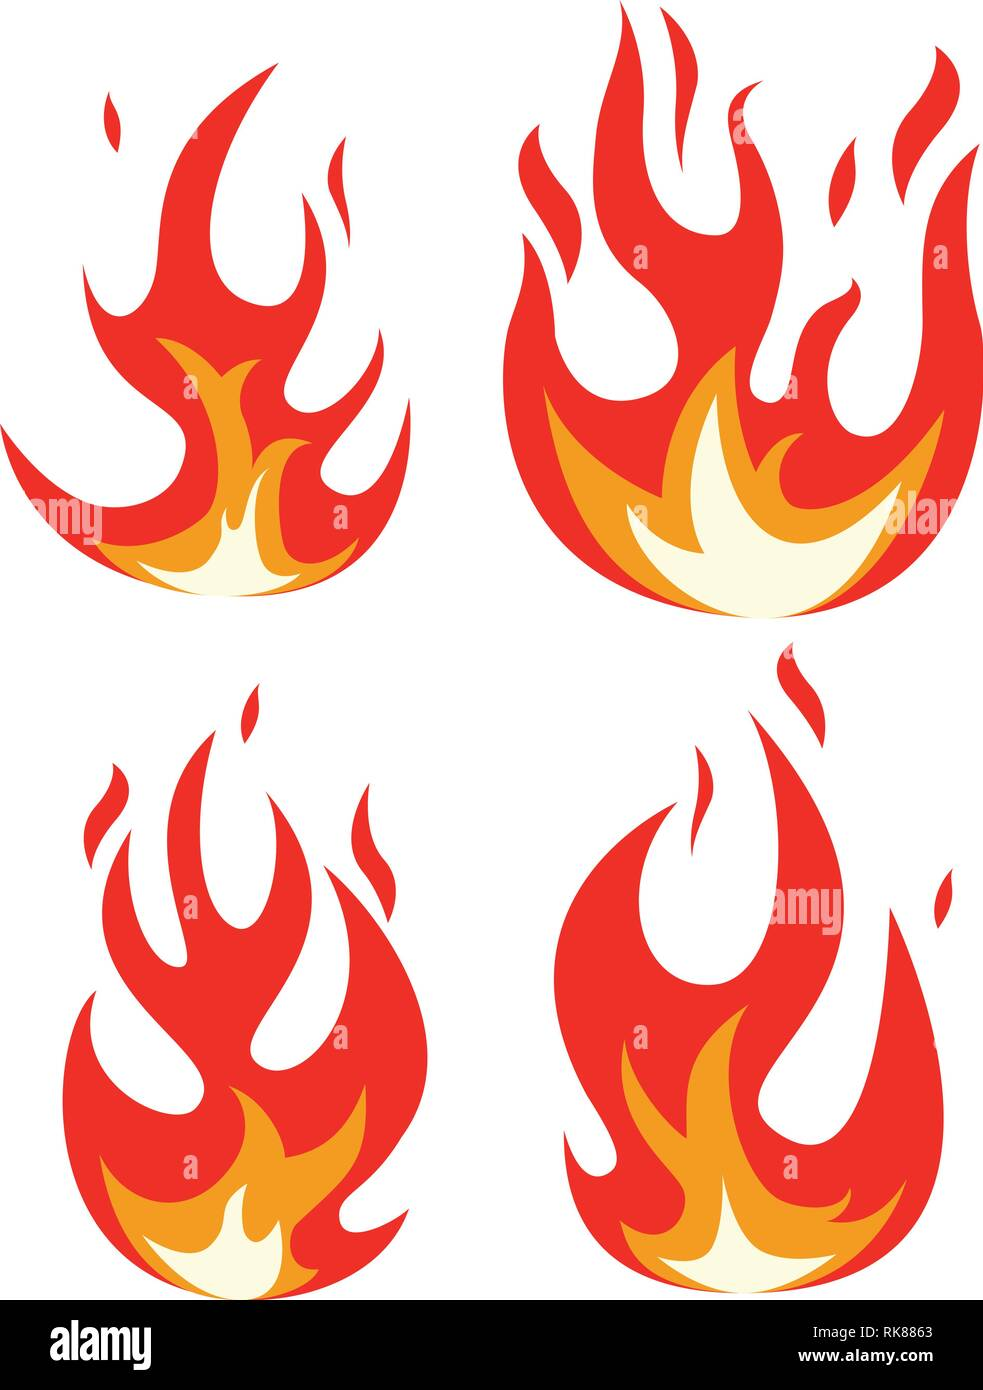 Collection D Icones Vectorielles Feu Flamme Feu Design Dessin